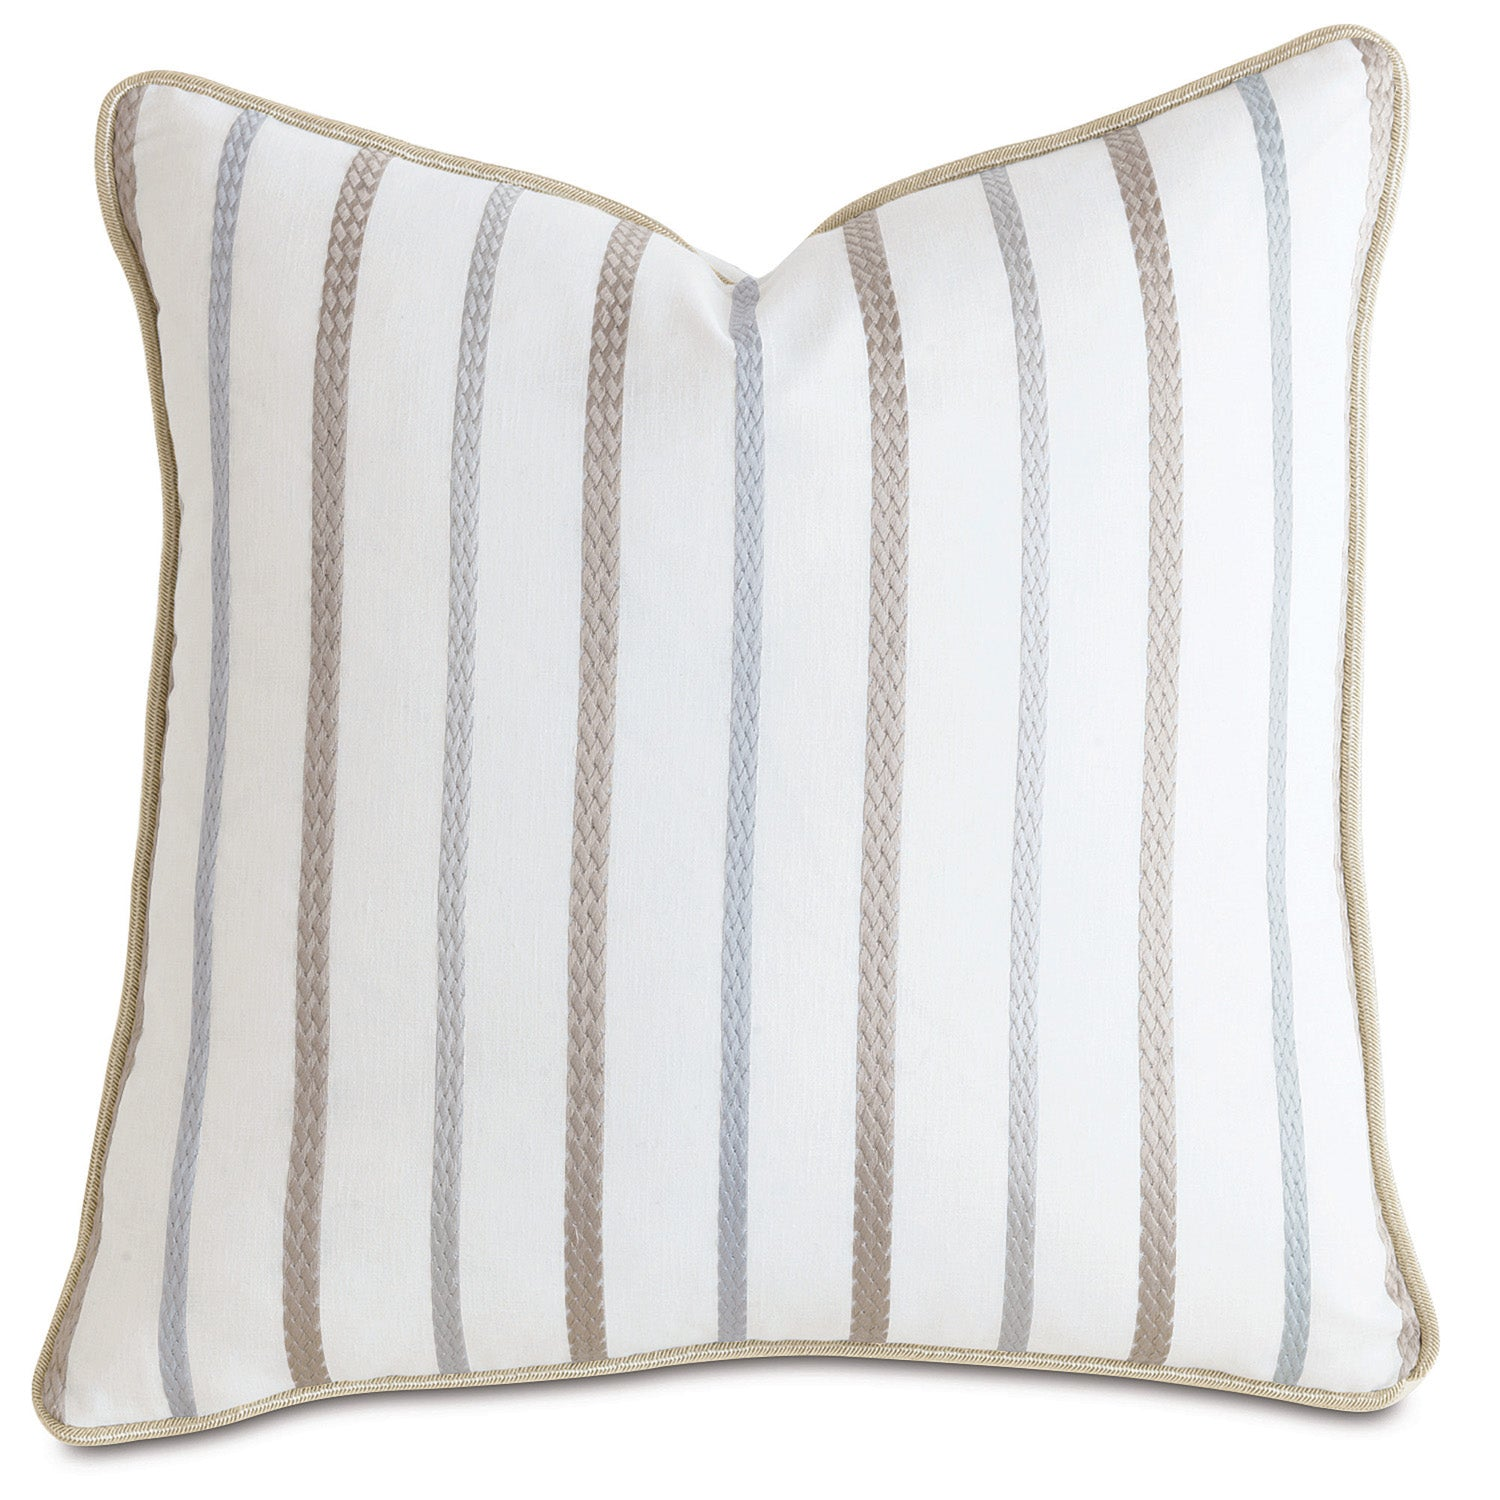 Cheney Pearl with Cord Accent Pillow